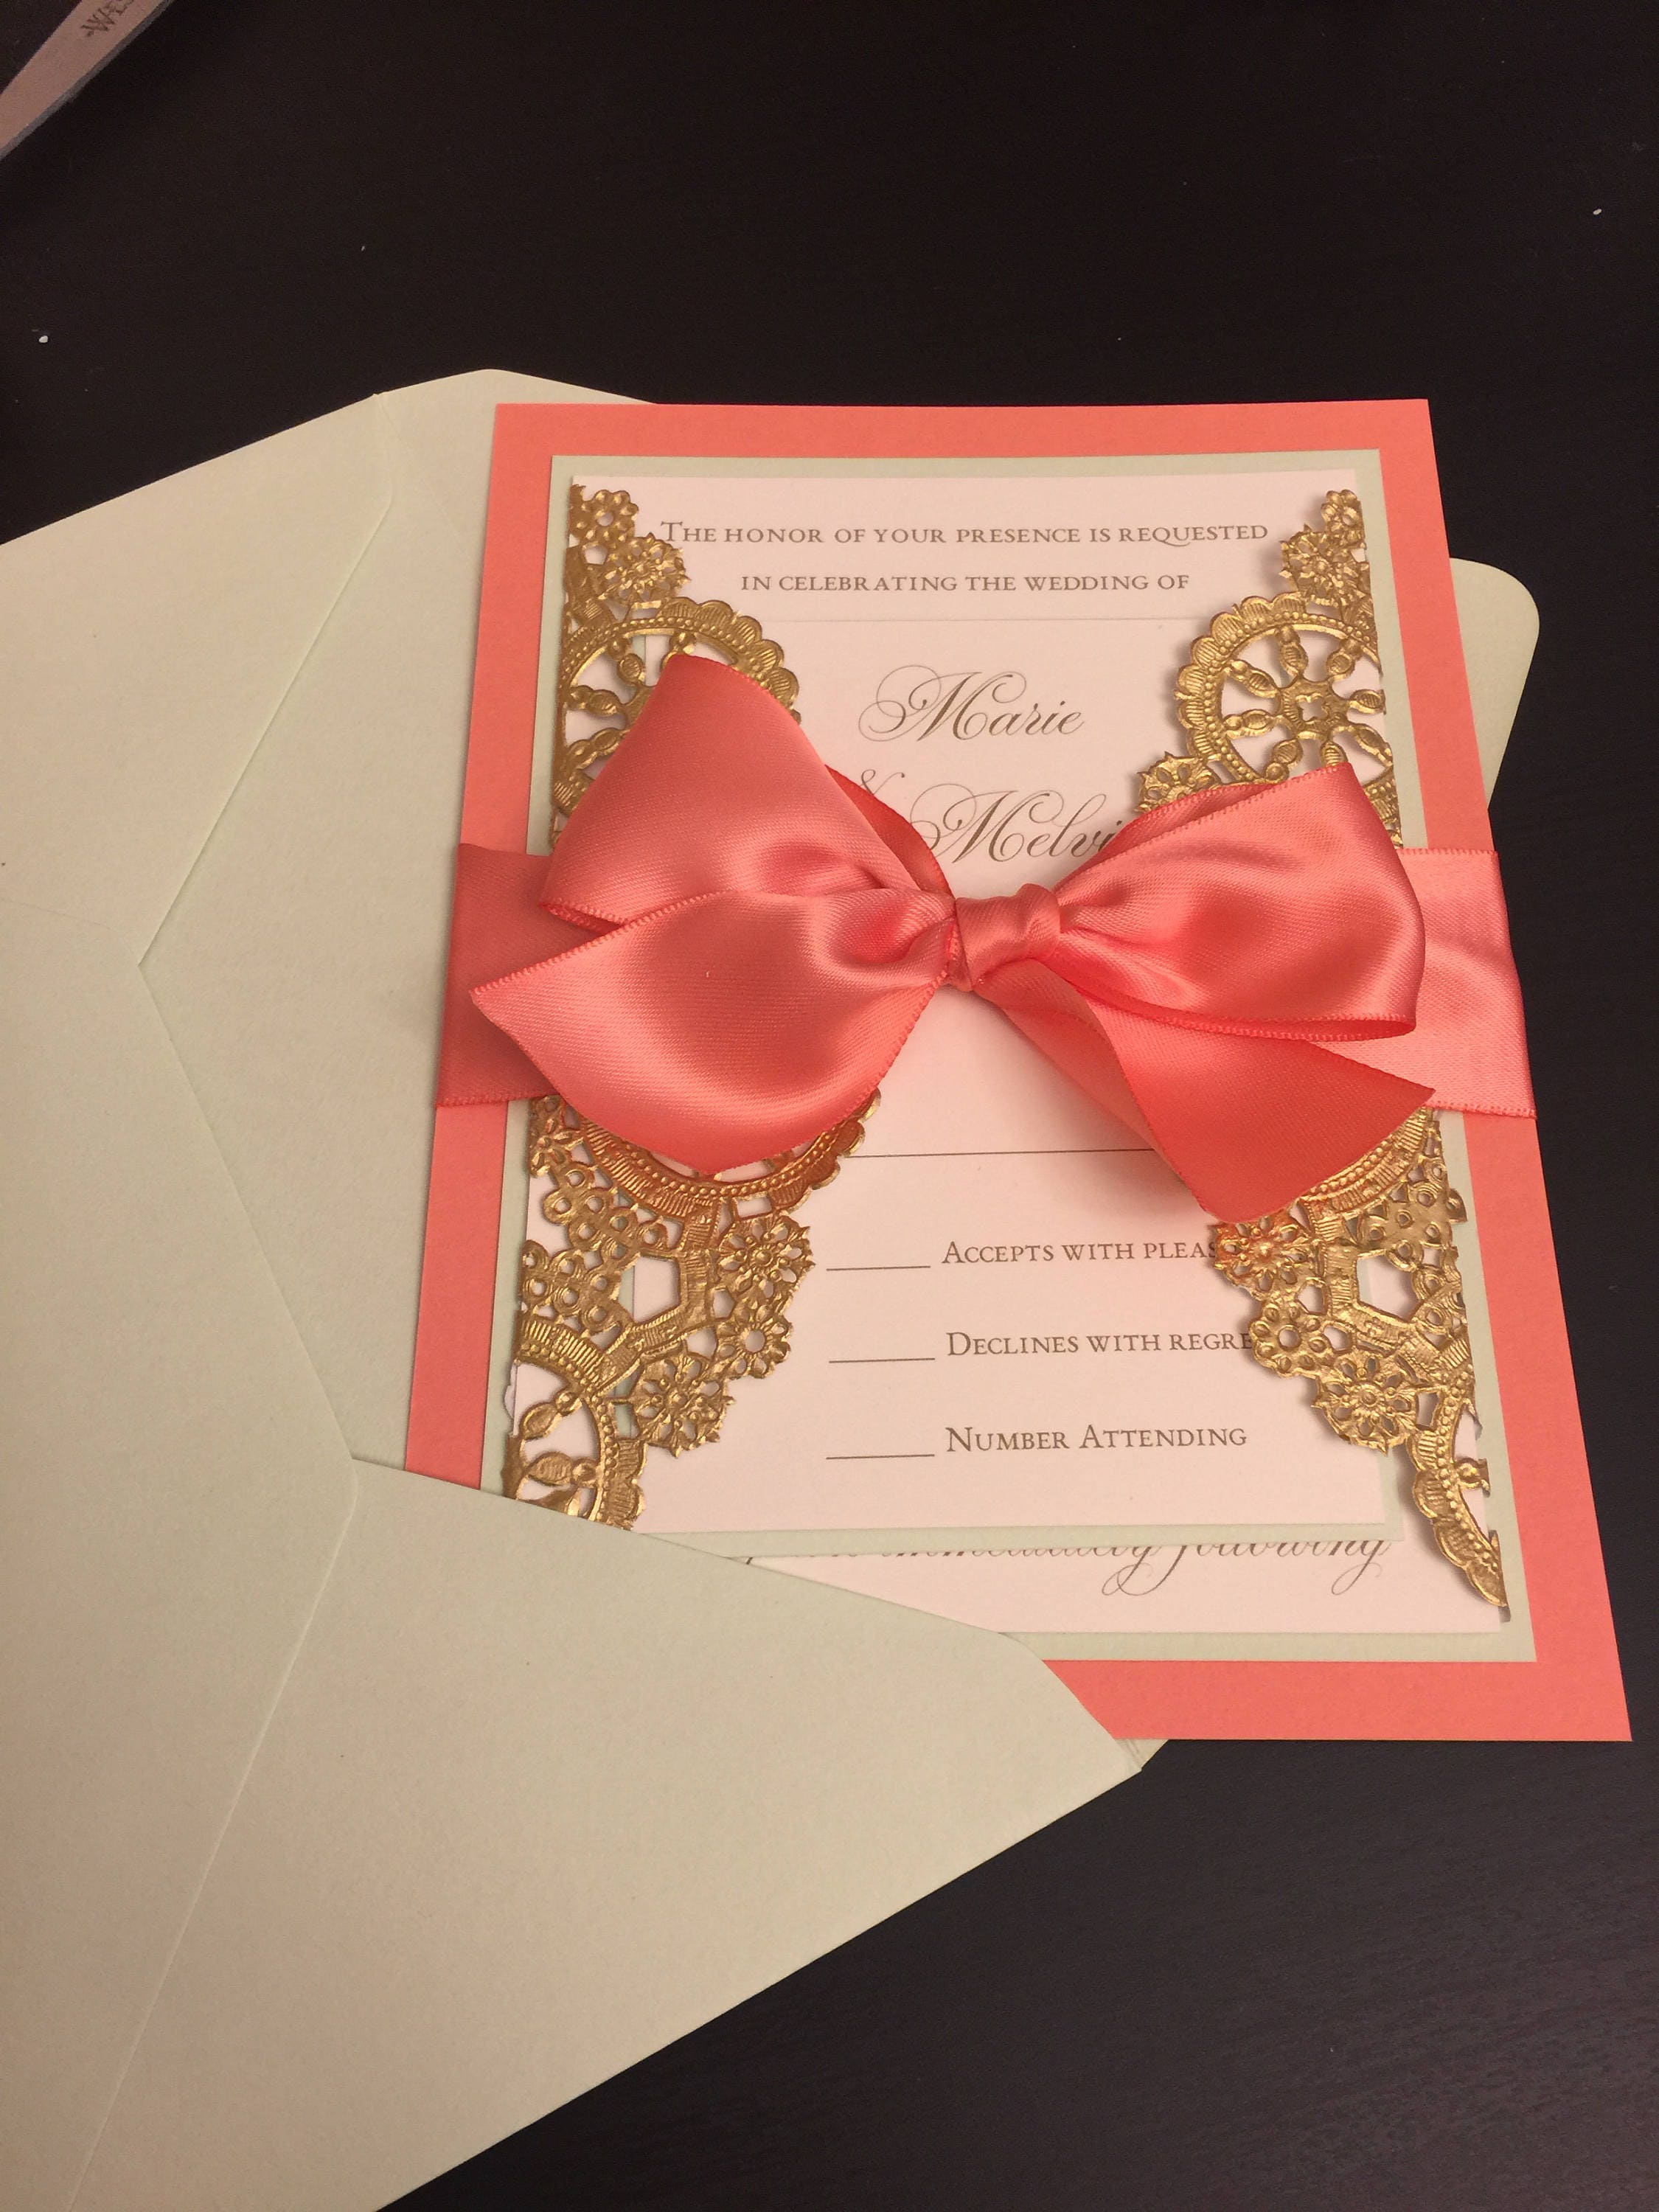 SAMPLE Attached Metallic Doily Wedding Invitation with